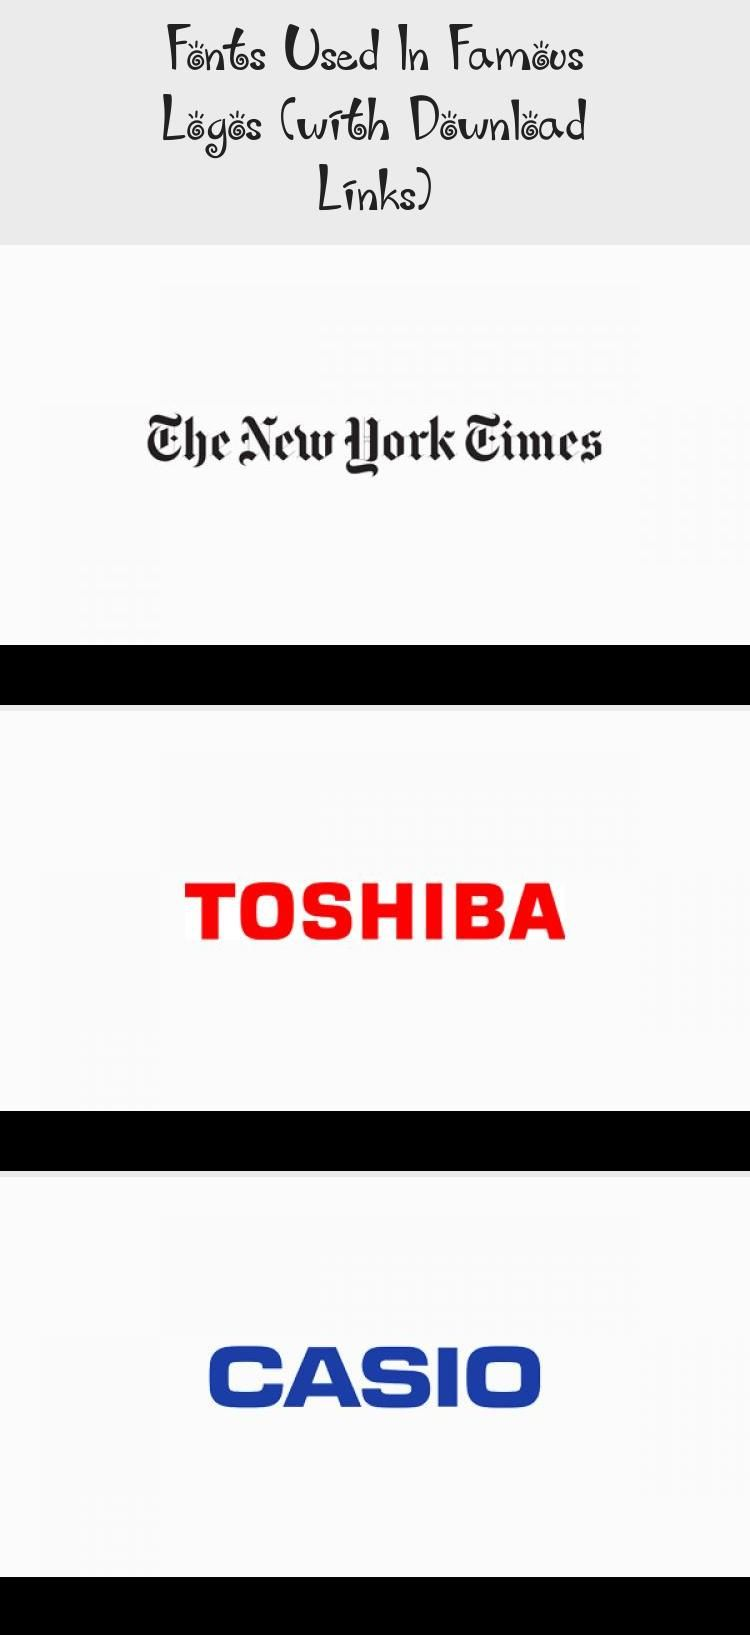 Fonts Used In Famous Logos With Download Links In 2020 Famous Logos Company Logo Famous